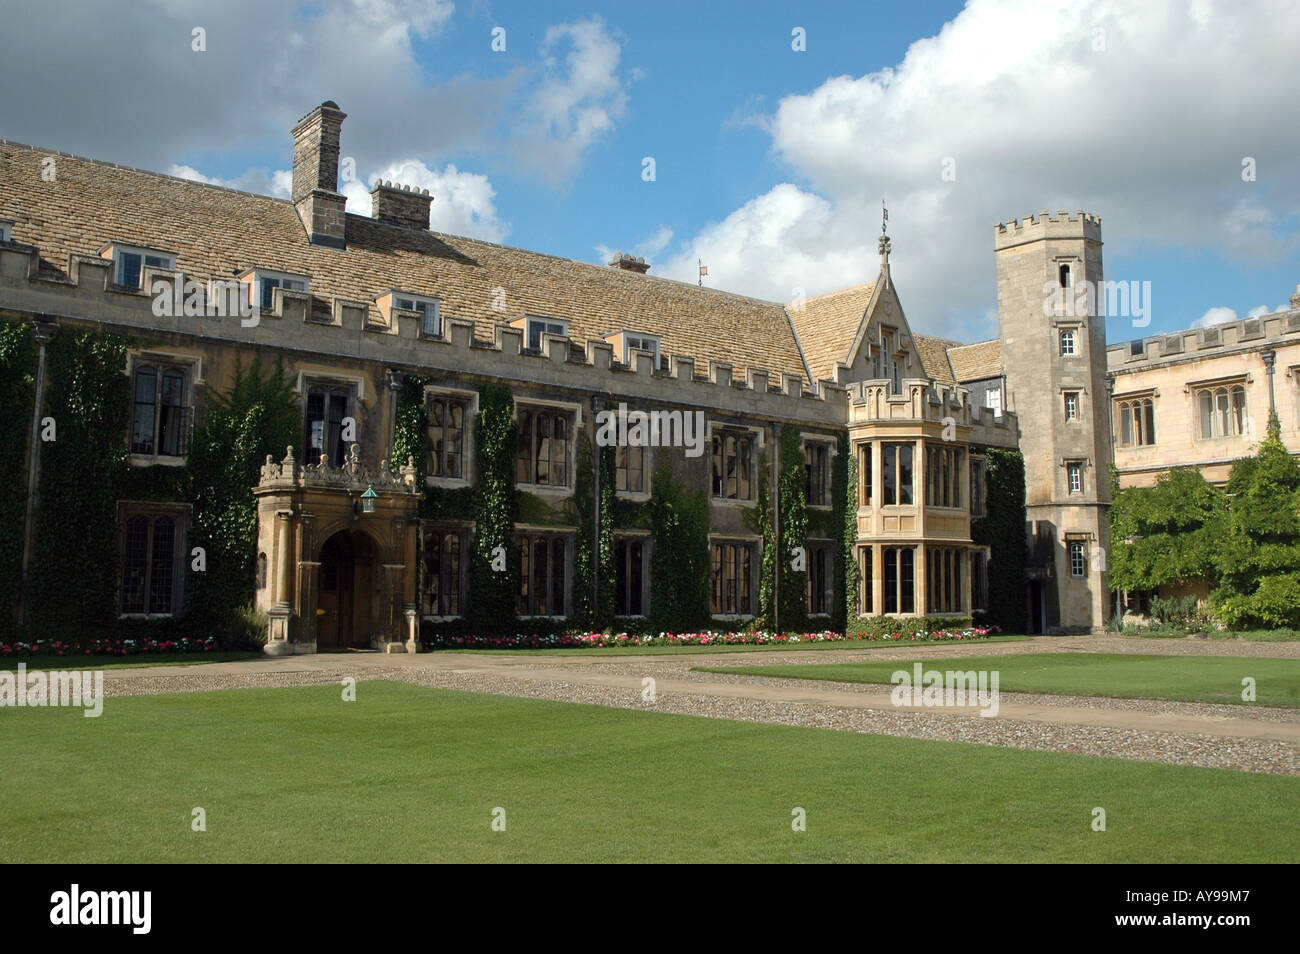 Master's Lodge at Great Court of Trinity College in Cambridge, UK - Stock Image